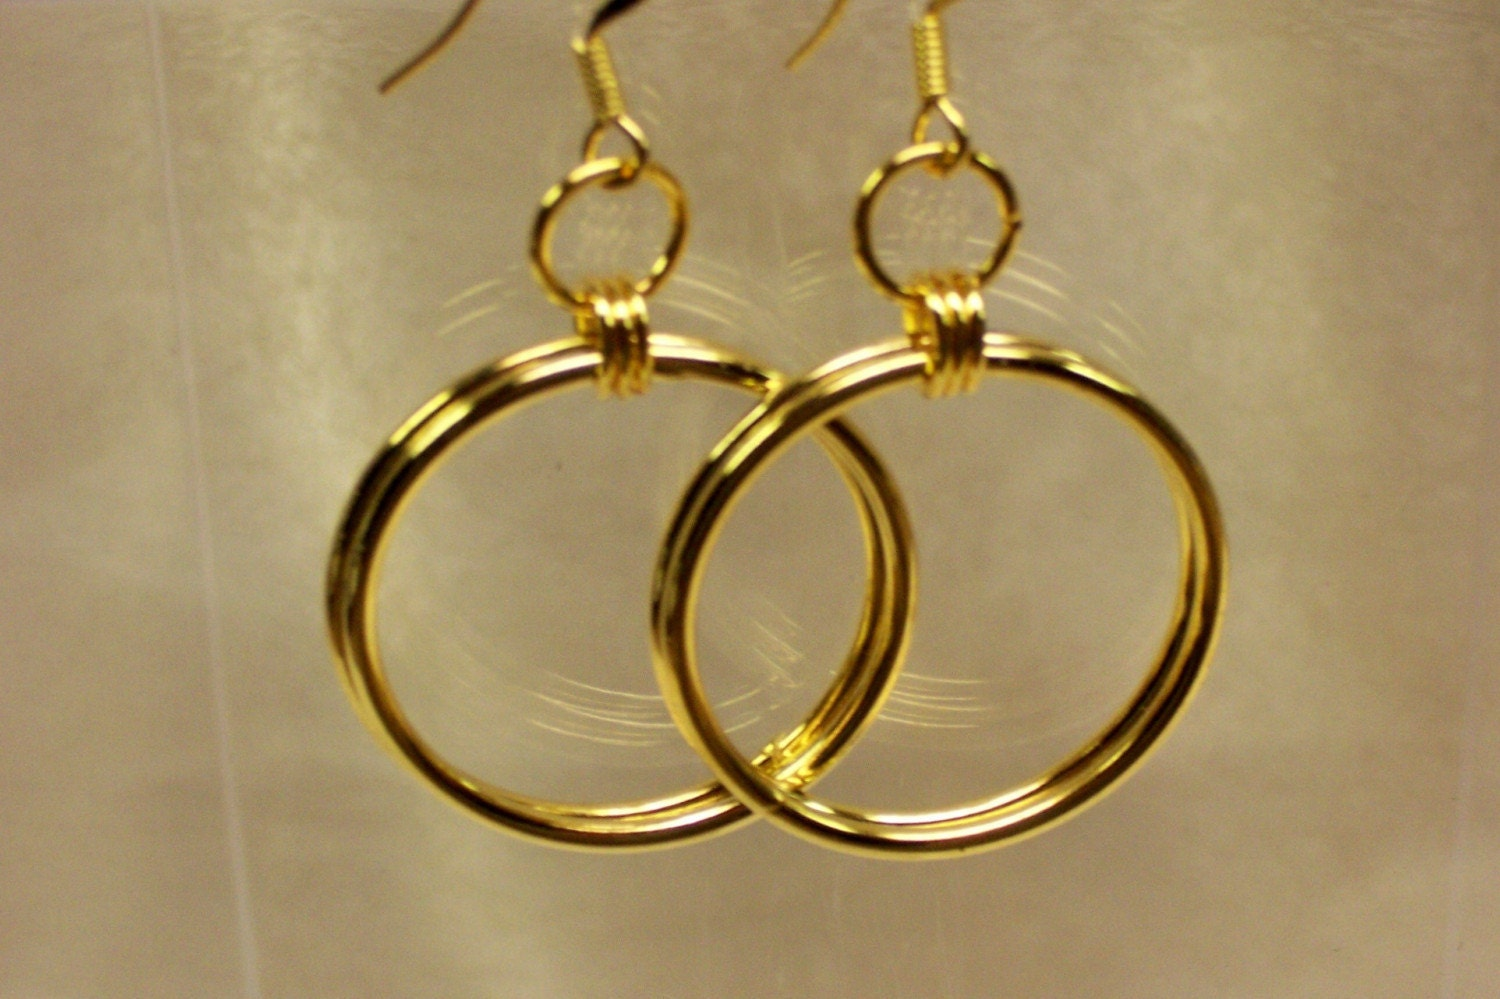 Cool Buy Gold Plated Fancy Party Wear Earrings For Girls And Women Online @ Youbella